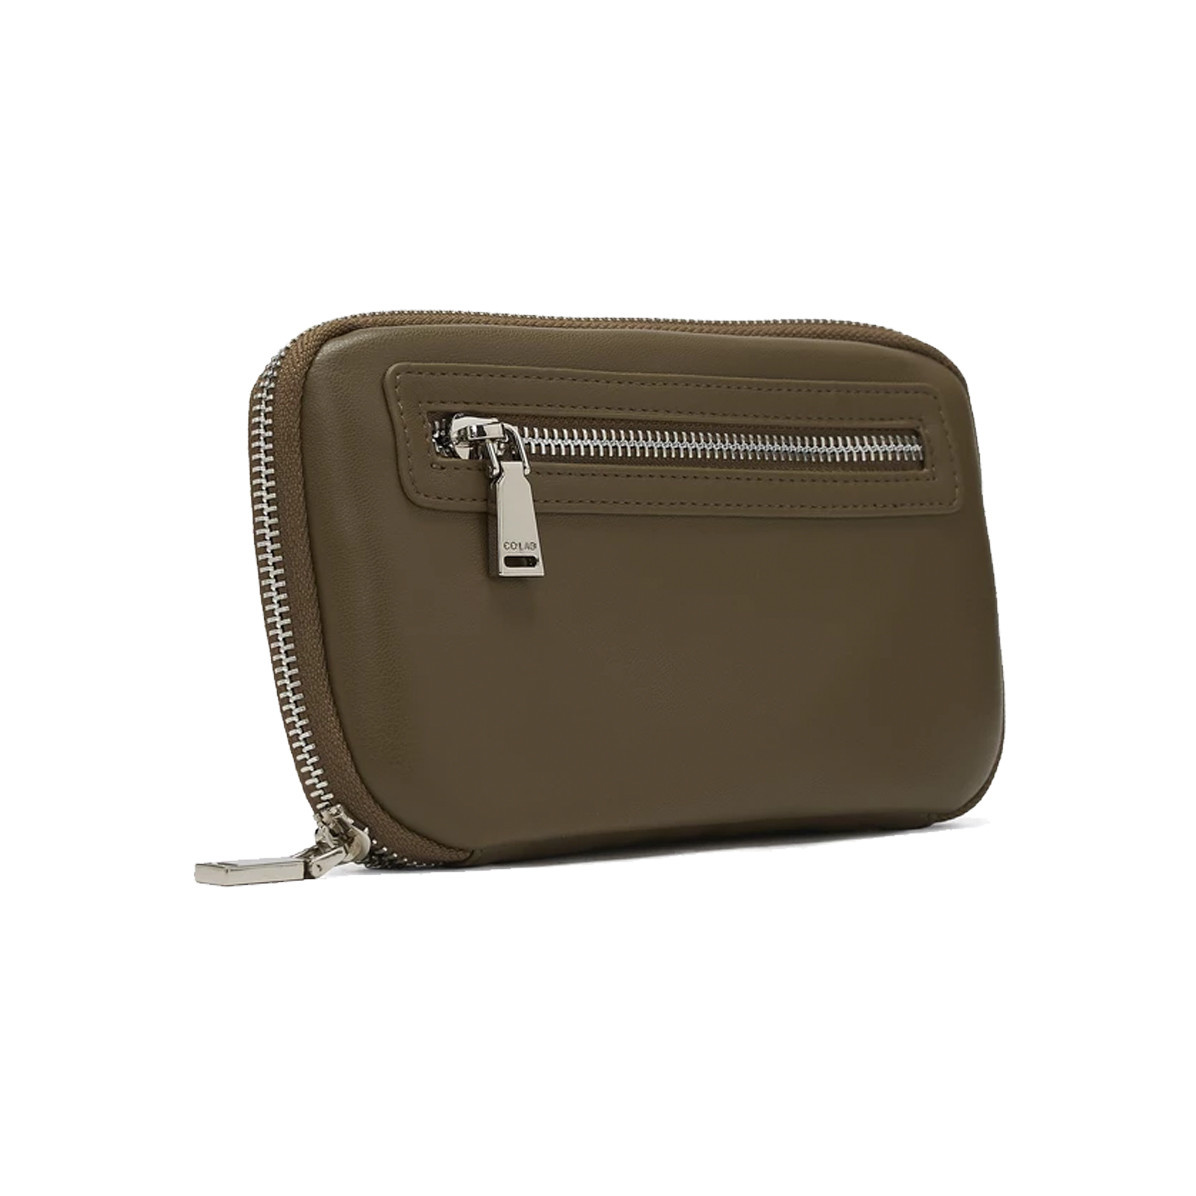 Colab Colab Smooth World Vegan Leather Wallet Olive